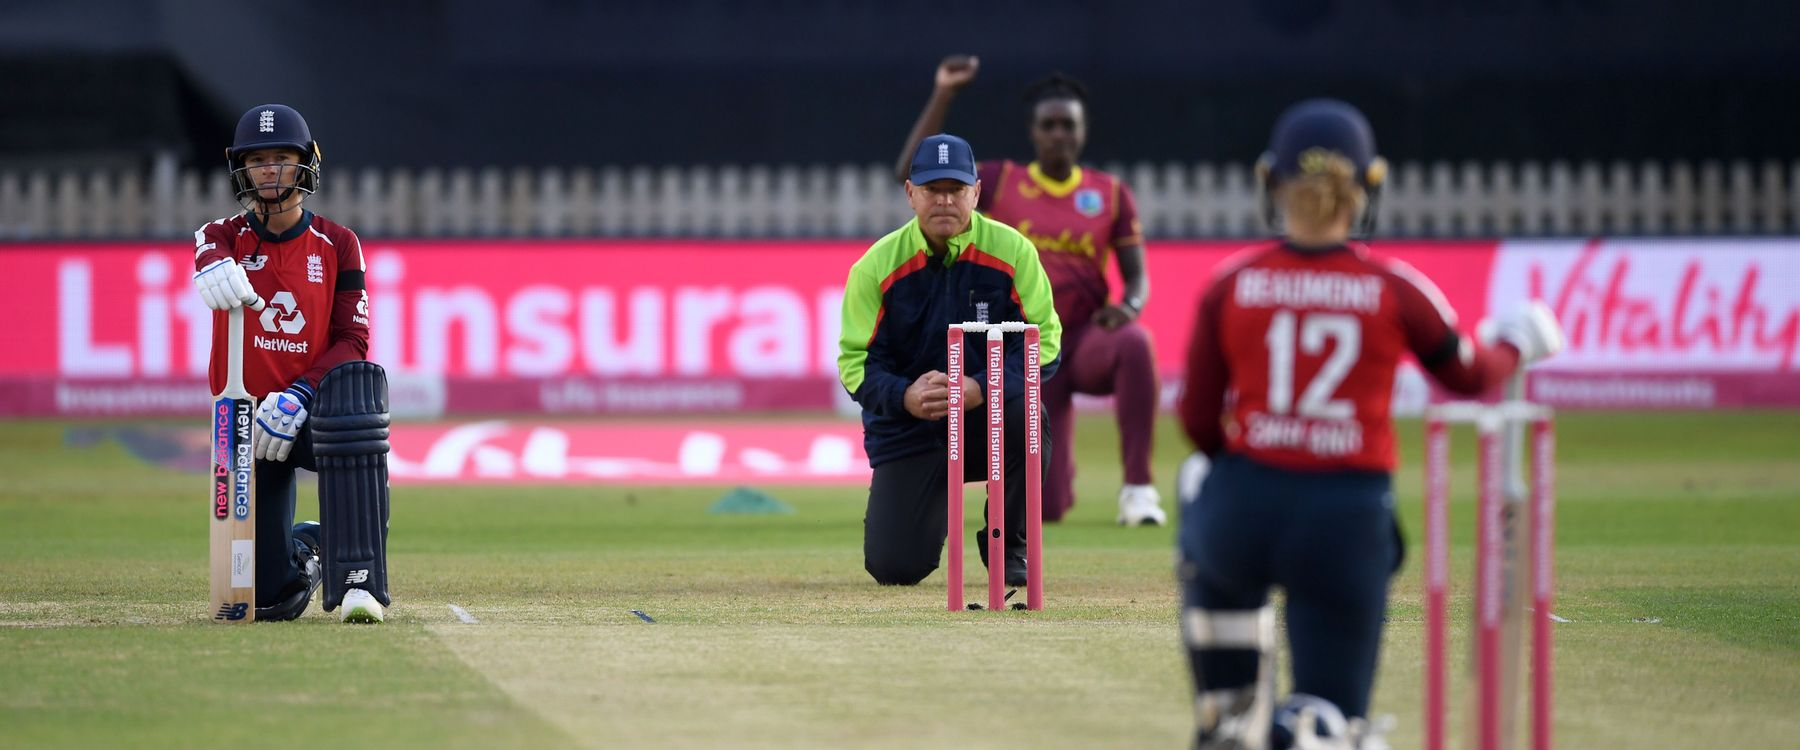 The ECB has reaffirmed its commitment to drive out all forms of discrimintaion from cricket